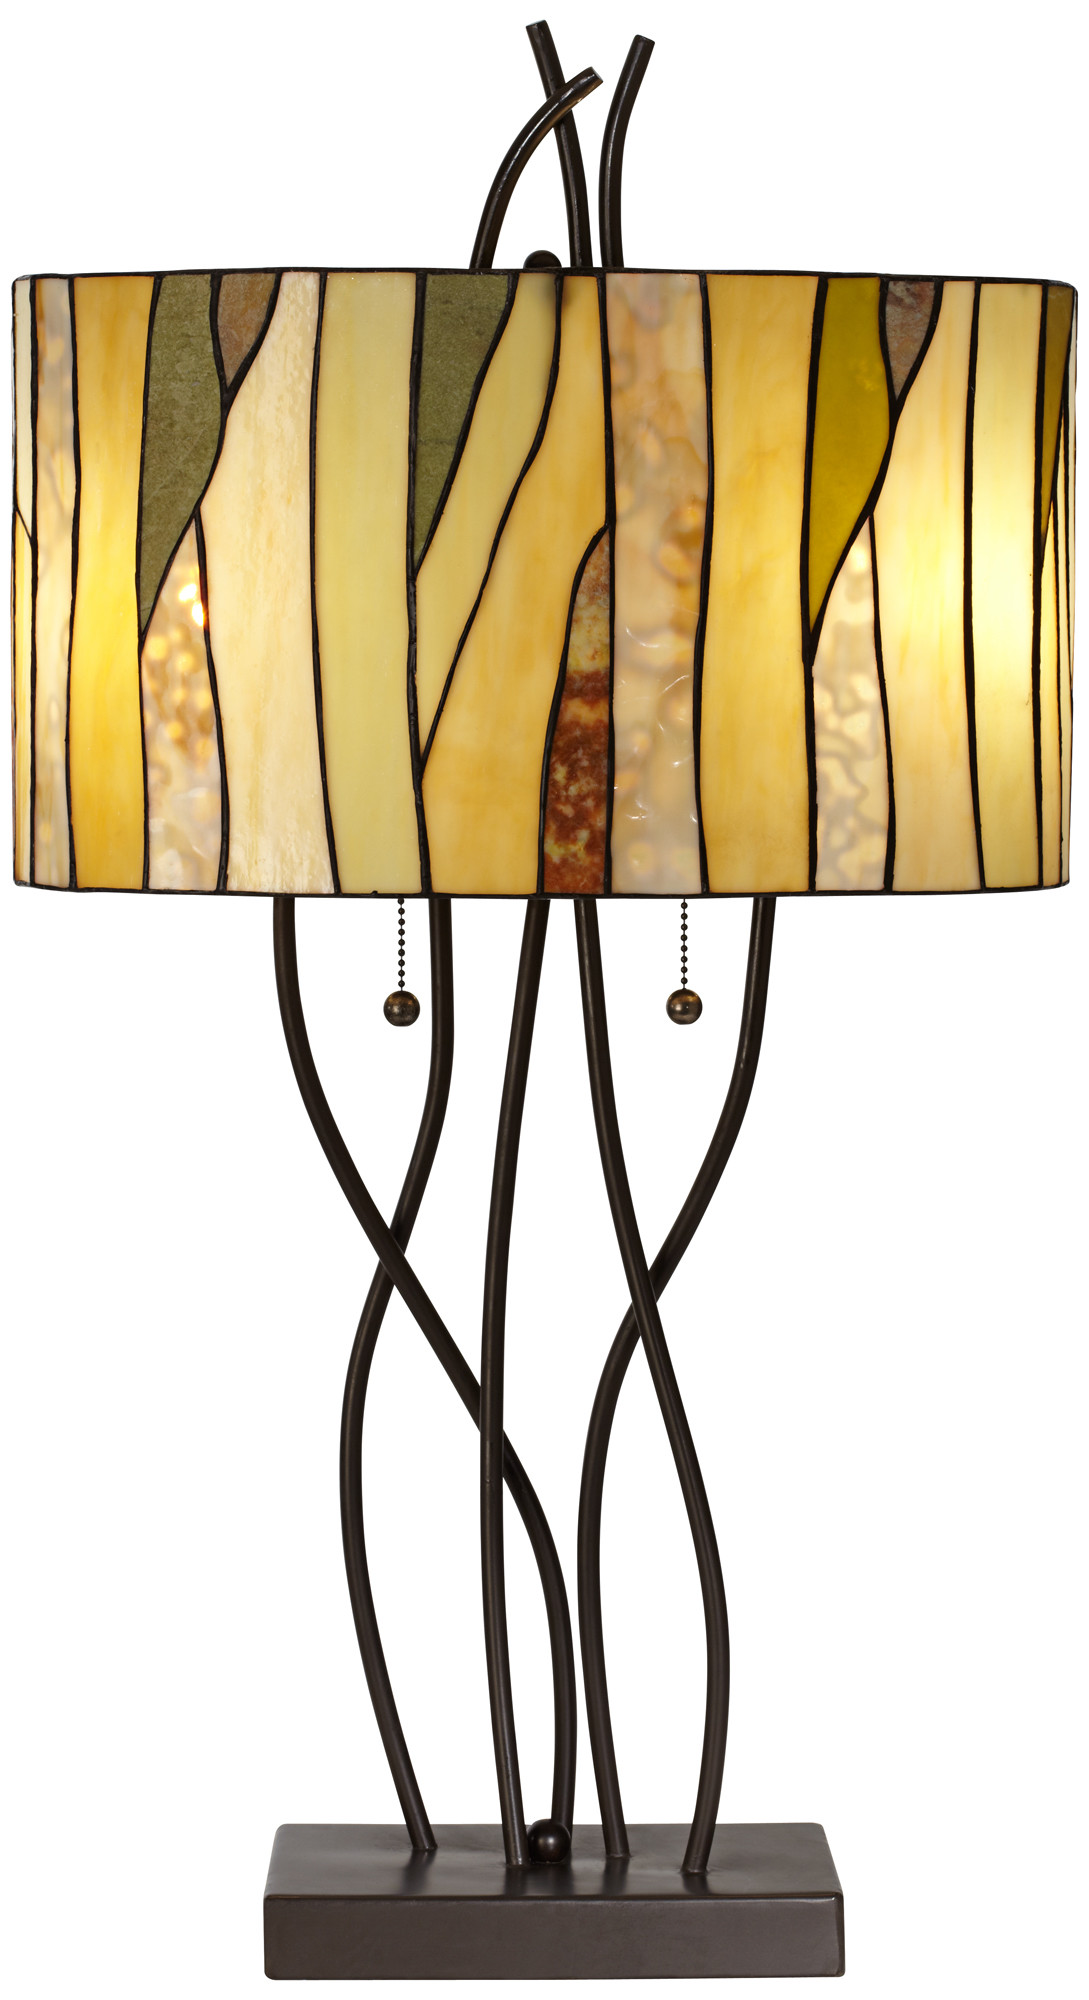 stained torchiere new mission fresh lamps style base glass tall lamp floor lovely pendant metal of kit reading table tiffany vandijkmc light lighting antique task stunning size shades full